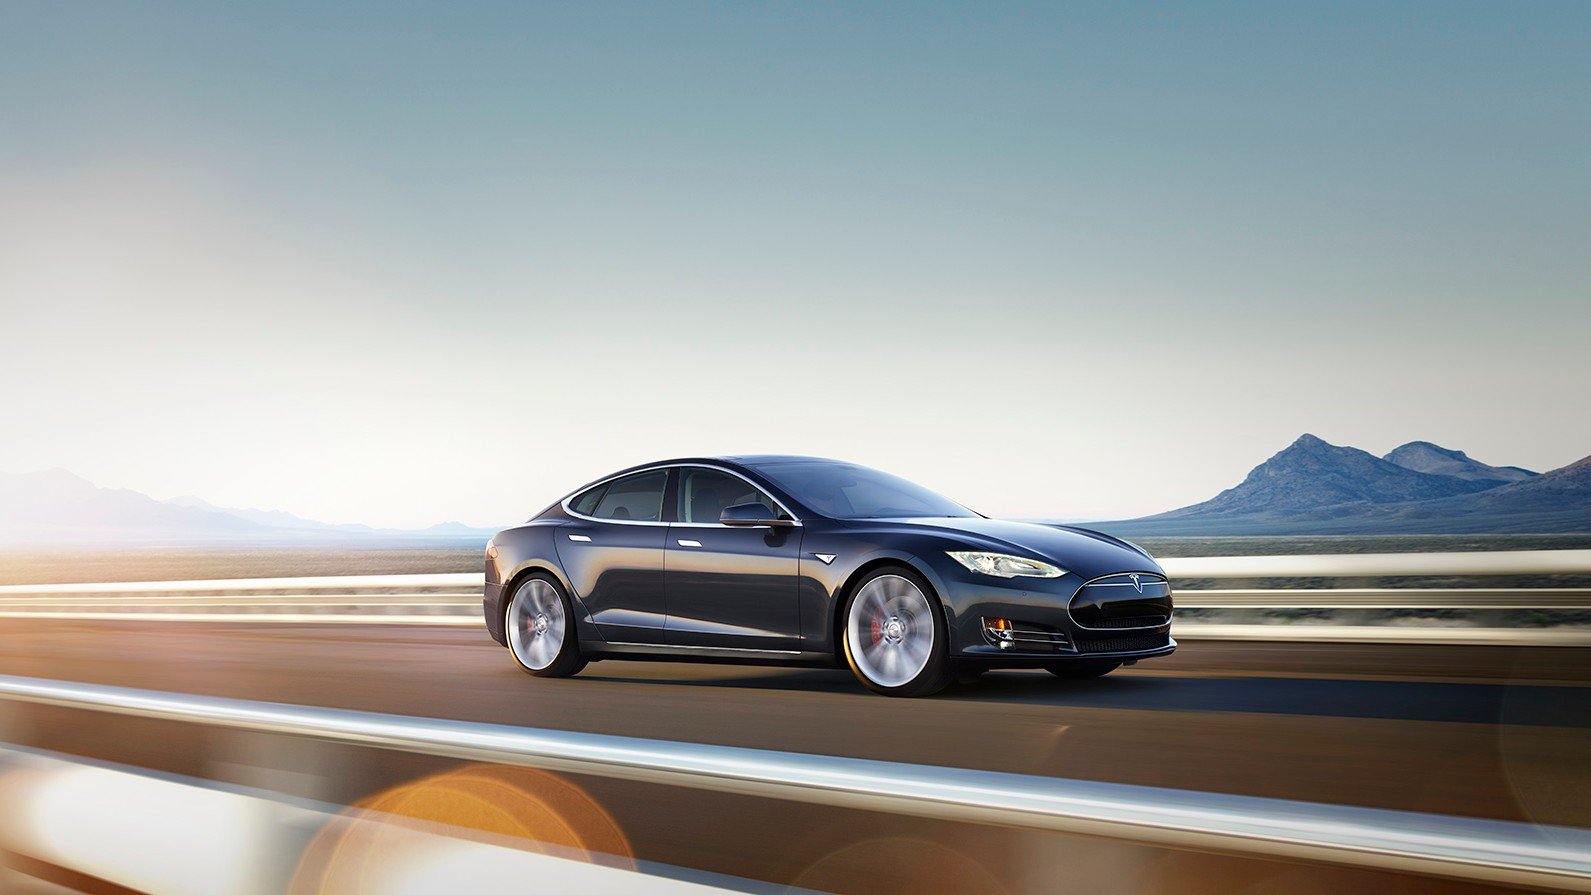 With 'Ludicrous Mode,' Tesla Model S Goes 0-60 in 2.8 seconds